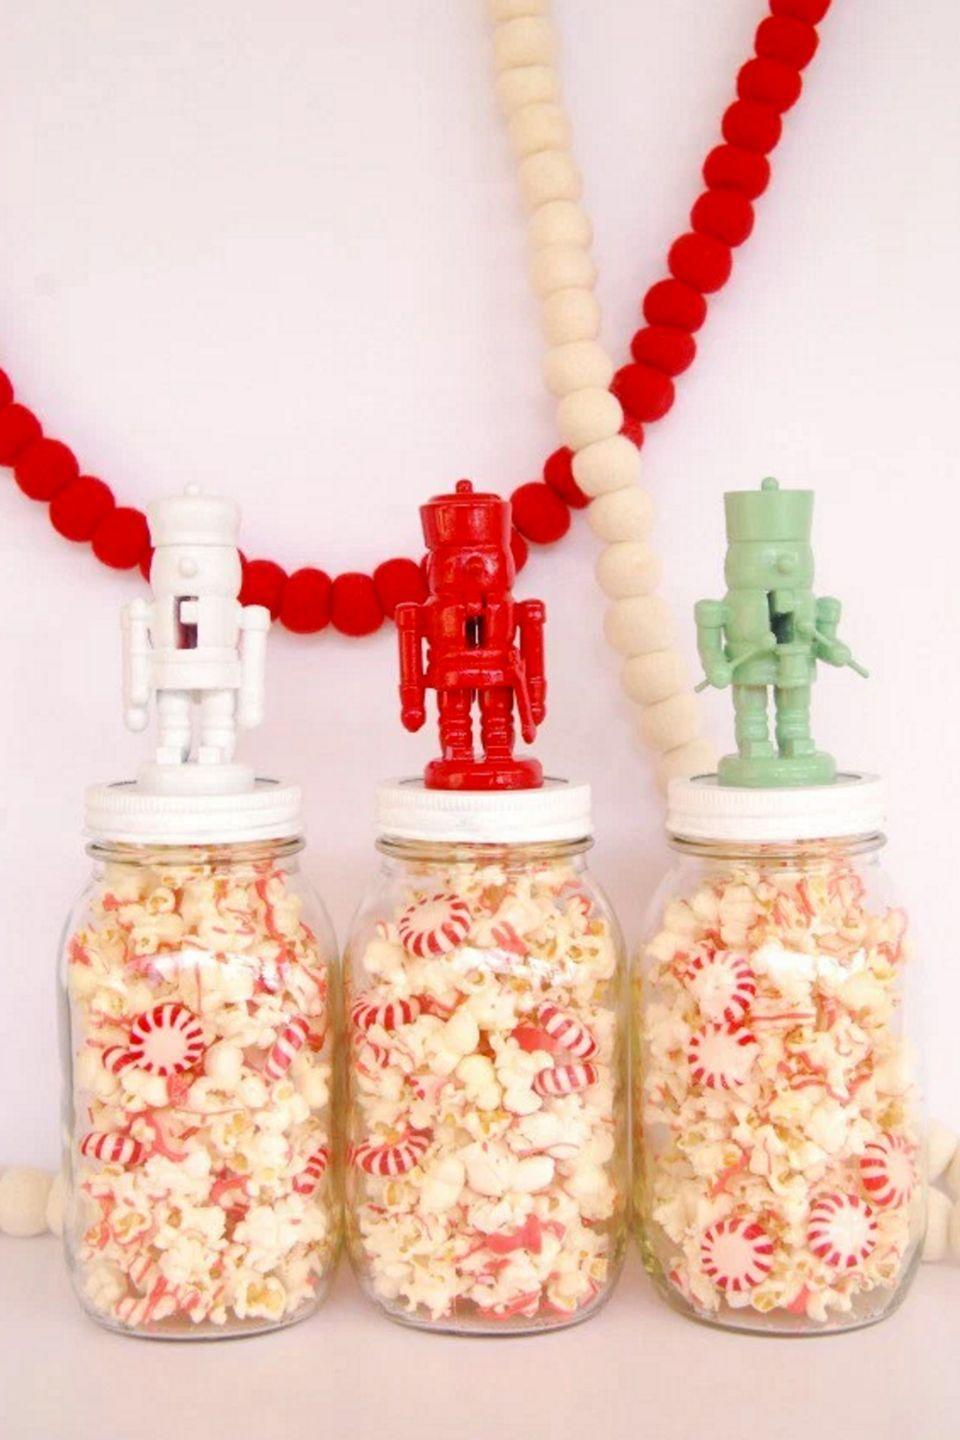 """<p>Having a Christmas party? Set these treat-filled jars out around your home for a festive snack that also doubles as decor. To make them, blogger Lexy Ward snagged some mini nutcrackers, spray-painted them, then glued them to the tops of her Mason jars. </p><p><strong>Get the tutorial at <a href=""""http://theproperpinwheel.com/2012/12/diy-nutcracker-jar-toppers/"""" rel=""""nofollow noopener"""" target=""""_blank"""" data-ylk=""""slk:The Proper Pinwheel"""" class=""""link rapid-noclick-resp"""">The Proper Pinwheel</a>.</strong></p><p><a class=""""link rapid-noclick-resp"""" href=""""https://www.amazon.com/Krylon-GIDDS-800181-Spray-Paint-Cherry/dp/B0009X8M12/?tag=syn-yahoo-20&ascsubtag=%5Bartid%7C10050.g.2132%5Bsrc%7Cyahoo-us"""" rel=""""nofollow noopener"""" target=""""_blank"""" data-ylk=""""slk:SHOP SPRAY PAINT"""">SHOP SPRAY PAINT</a></p>"""